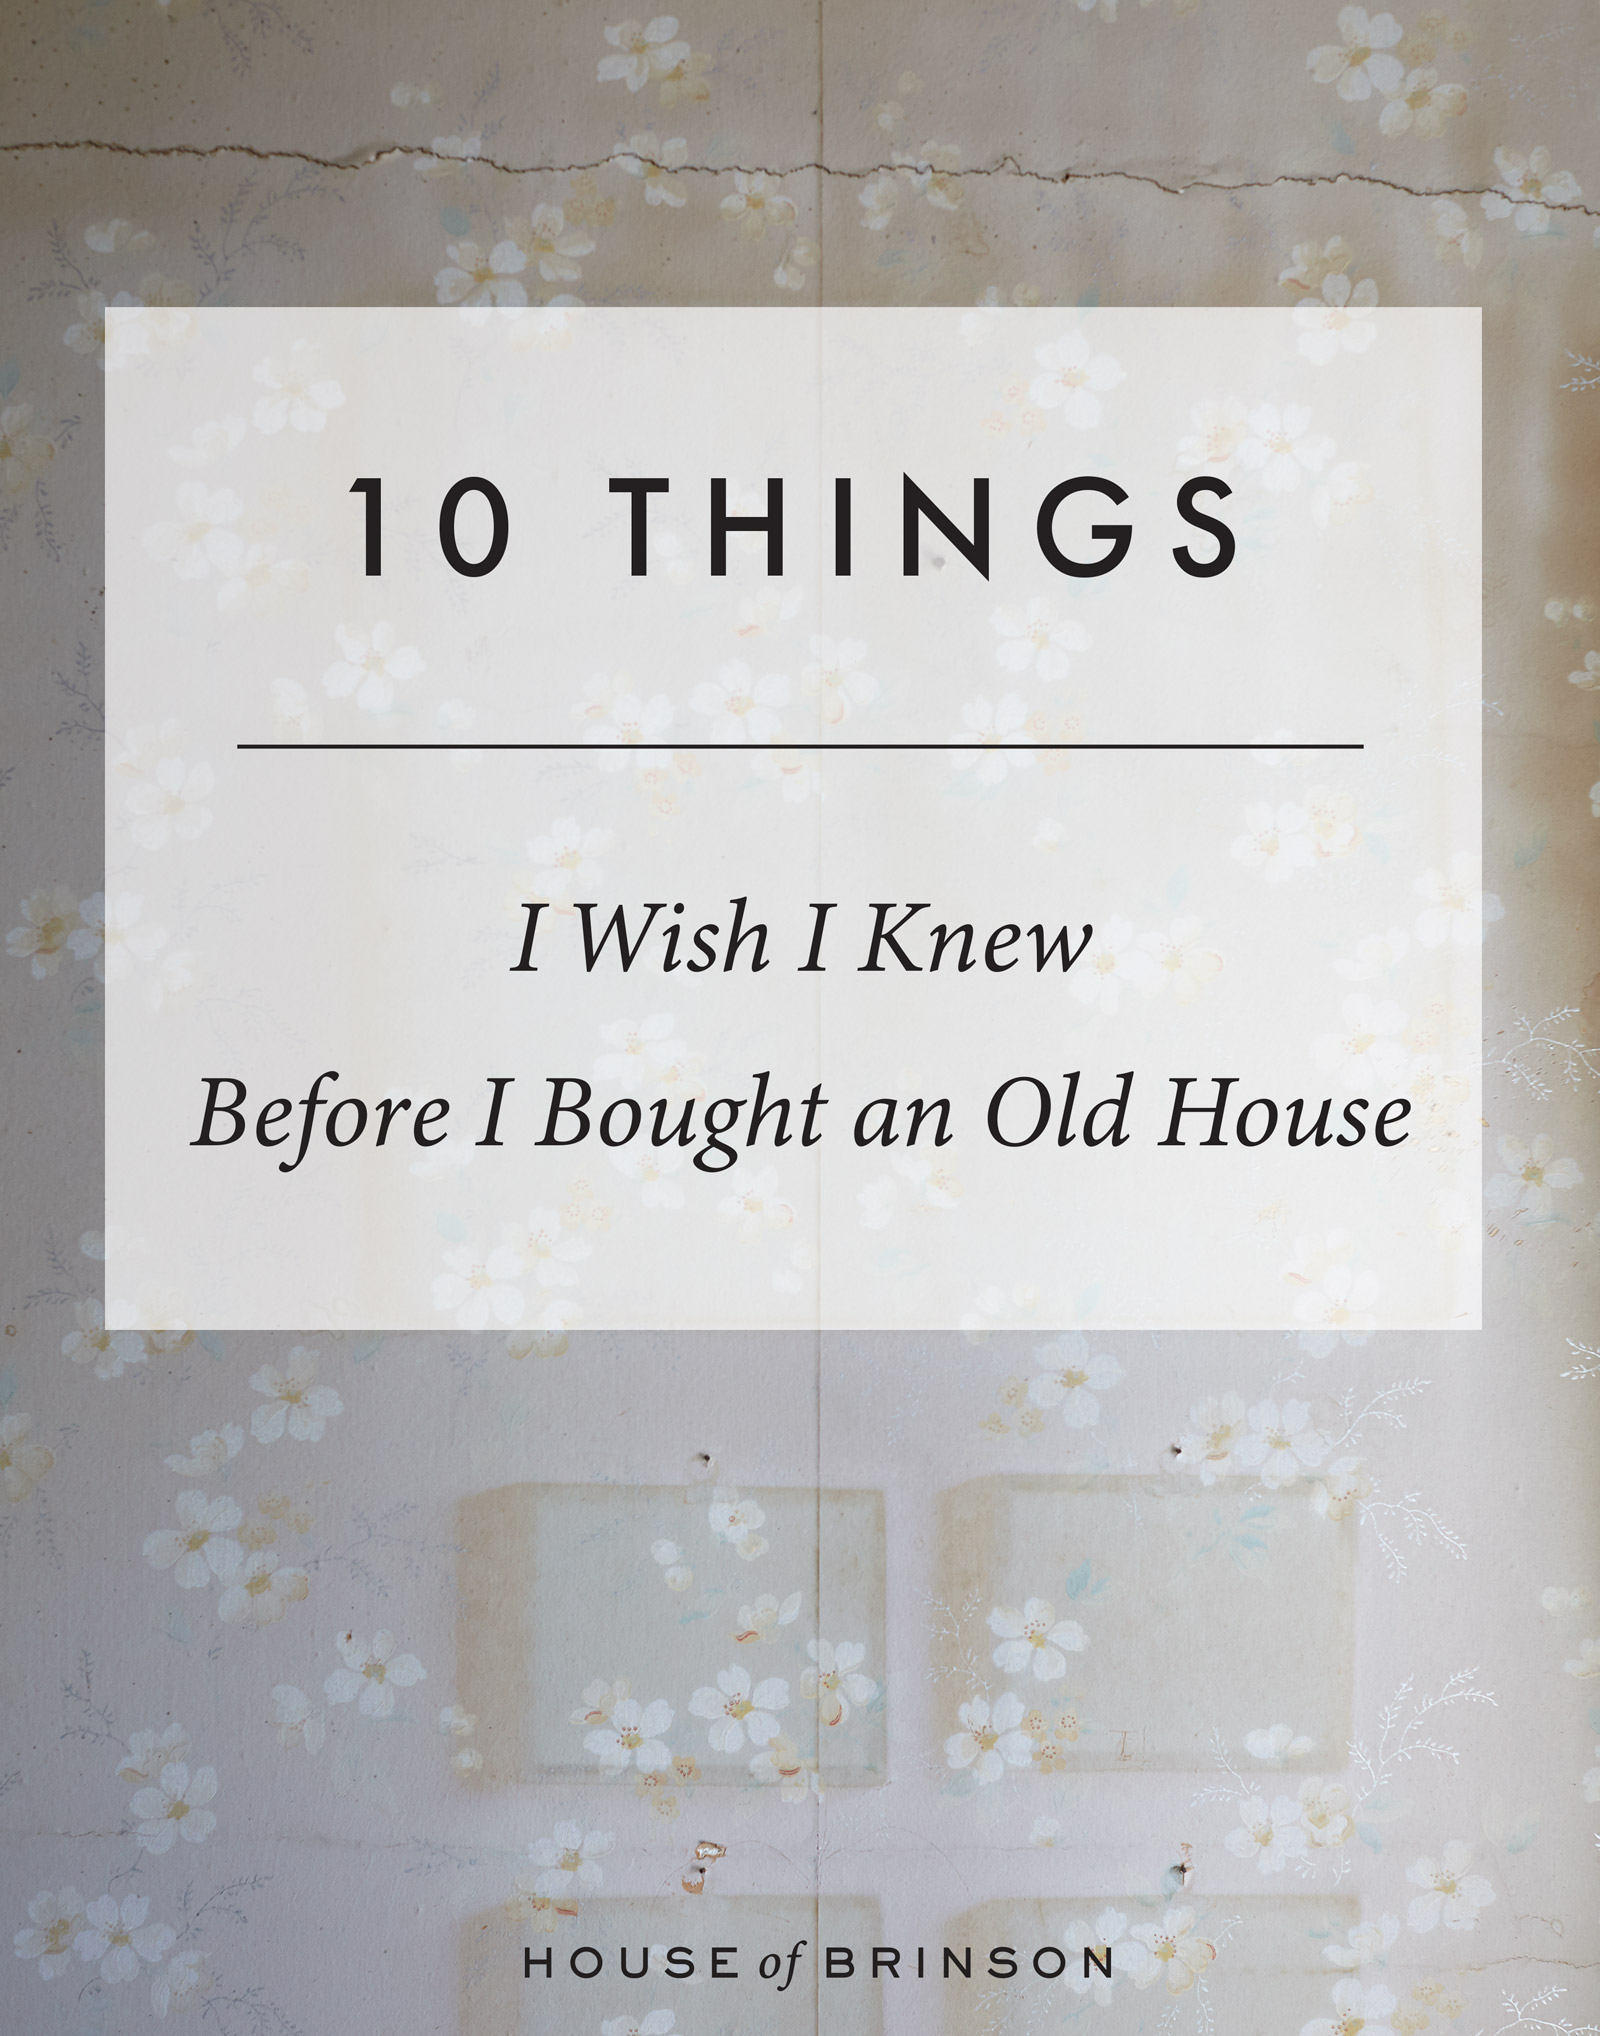 hight resolution of 10 things i wish i knew before buying an old house